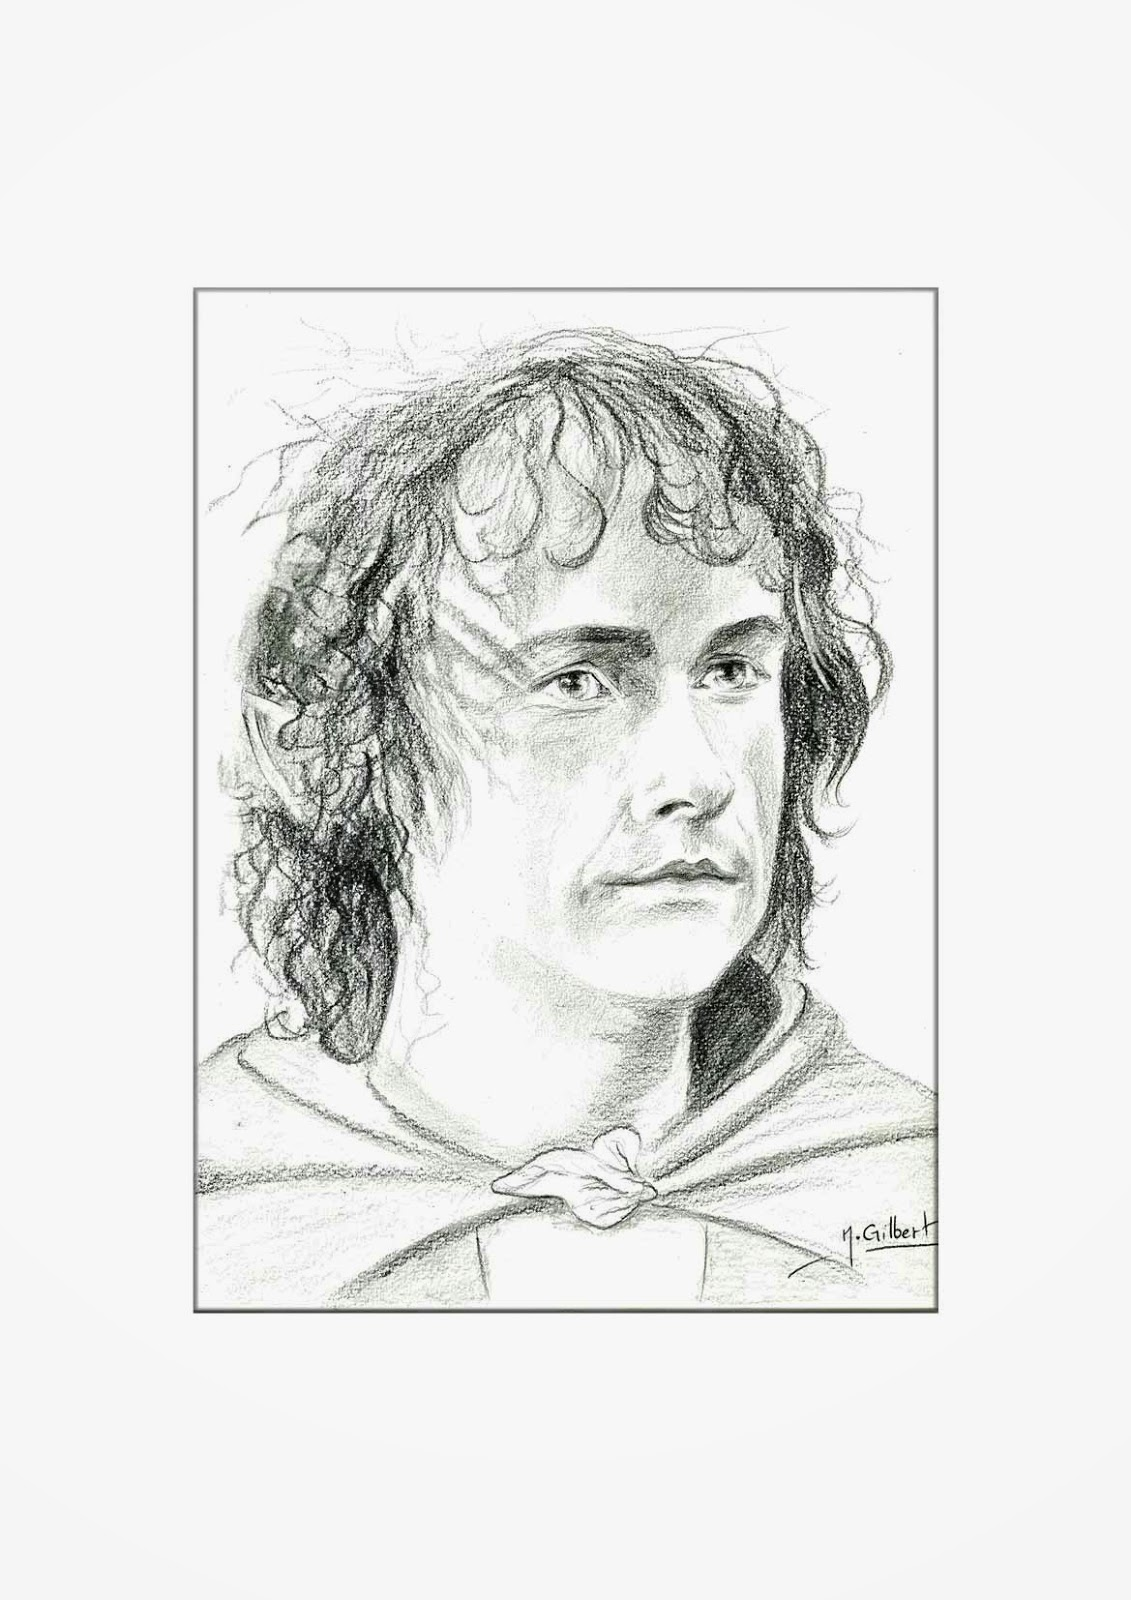 Nabrochot Creations Peregrin Took Le Seigneur Des Anneaux Dessin Drawing